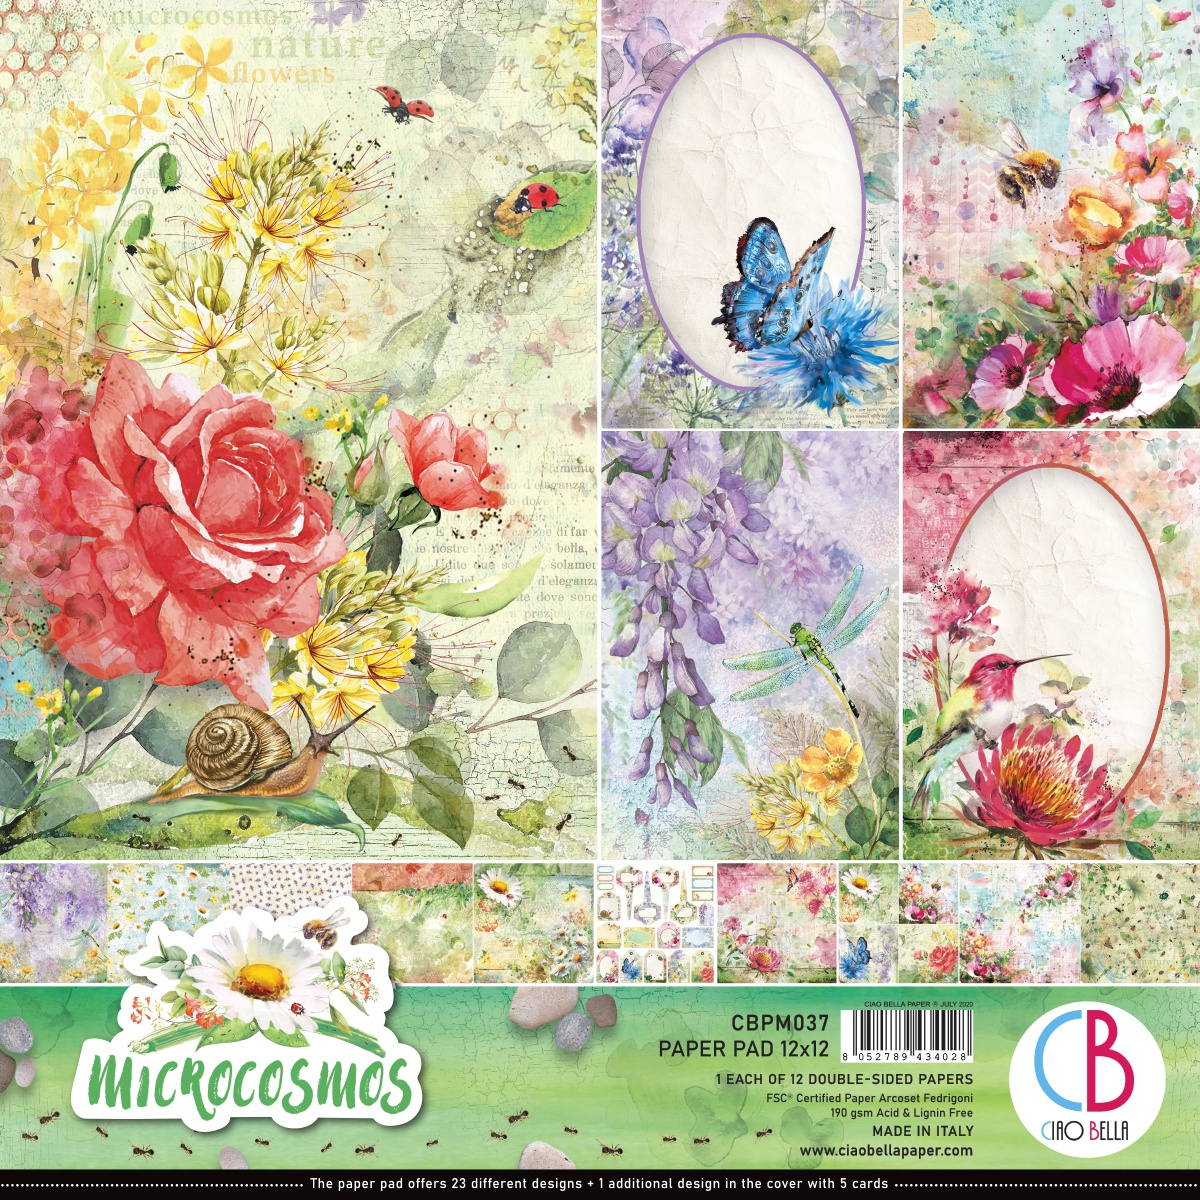 Ciao Bella Double-Sided Paper Pack - Microcosmos, 12x12